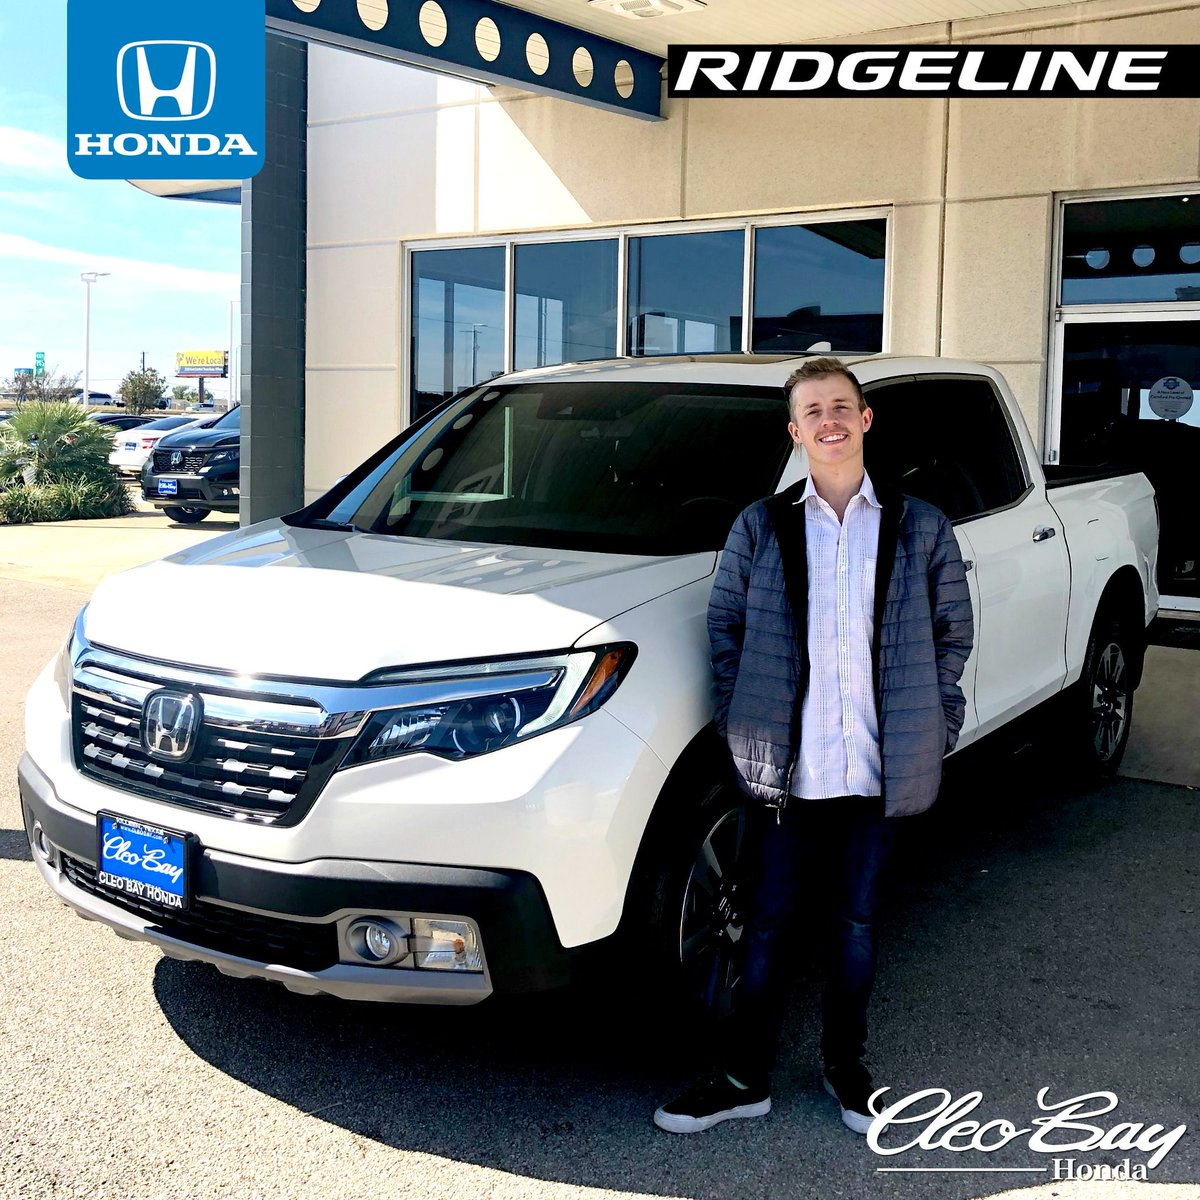 Congratulations Jeremiah on your recent purchase of a NEW 2019 Honda Ridgeline RTL-E! Check out our current inventory of new Honda Ridgeline's: . Contact Honda Sales Associate Dustin Carter at 254-690-7355, #cleobayhonda #hondaridgeline #ridgeline